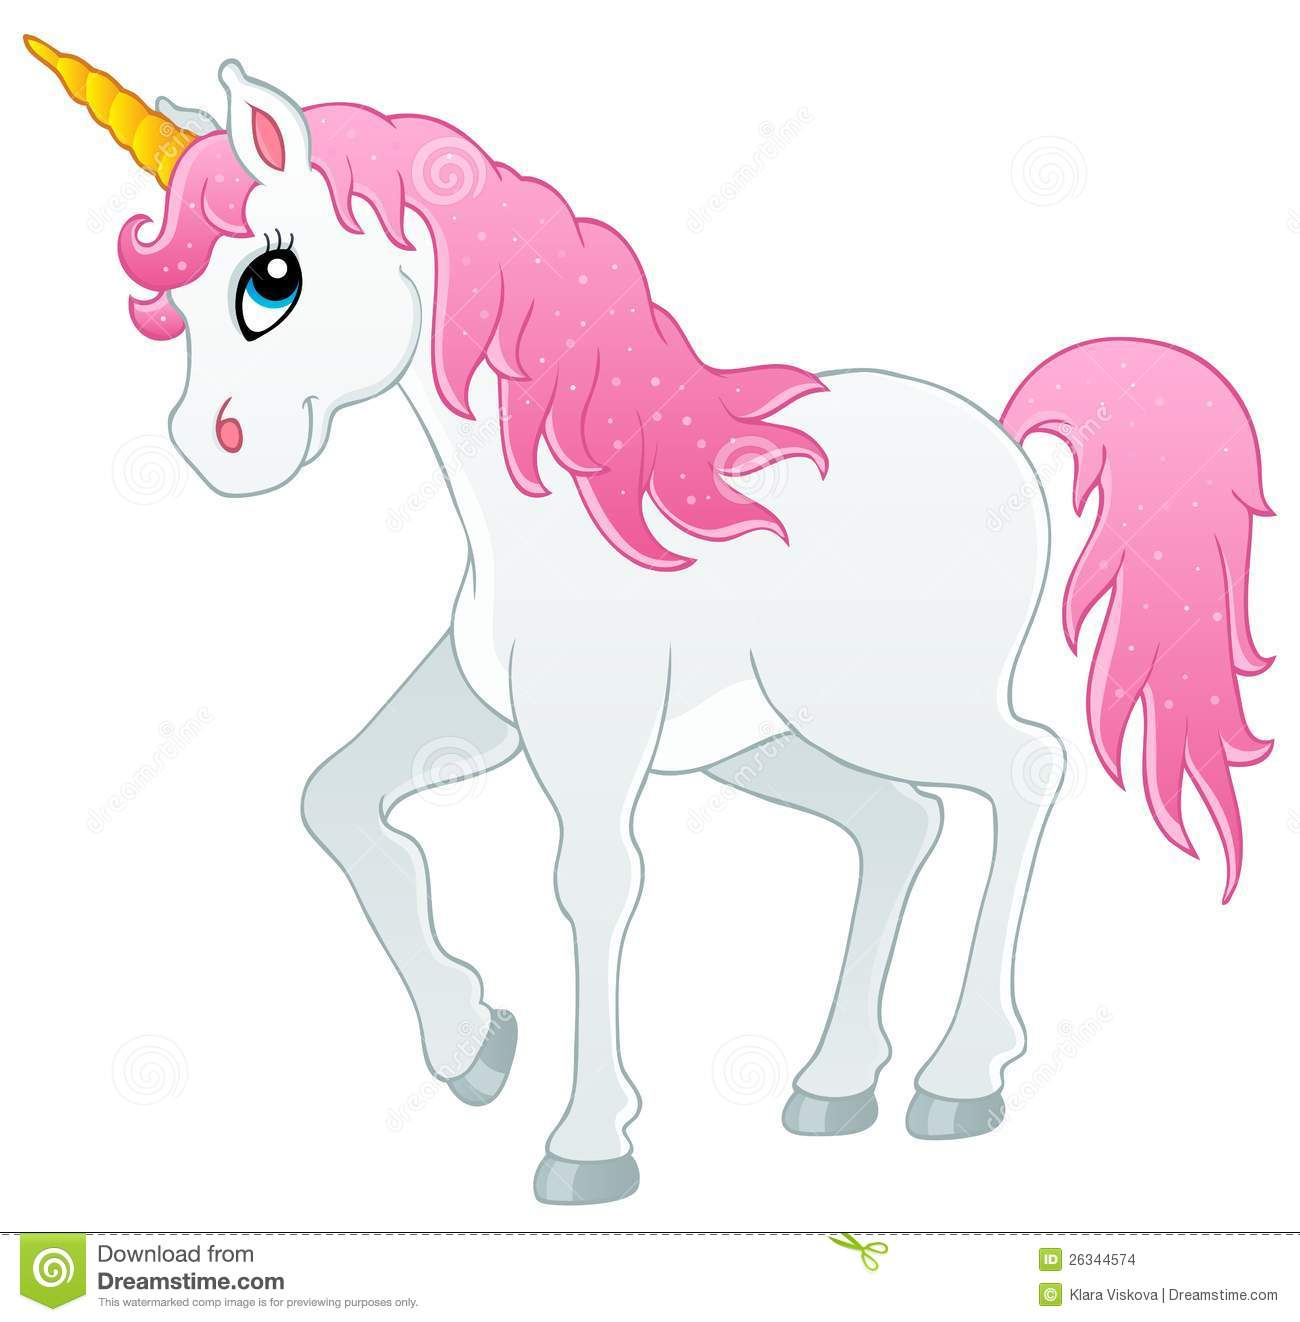 Fairy Tale Unicorn Theme Image 1 Stock Images - Image: 26344574